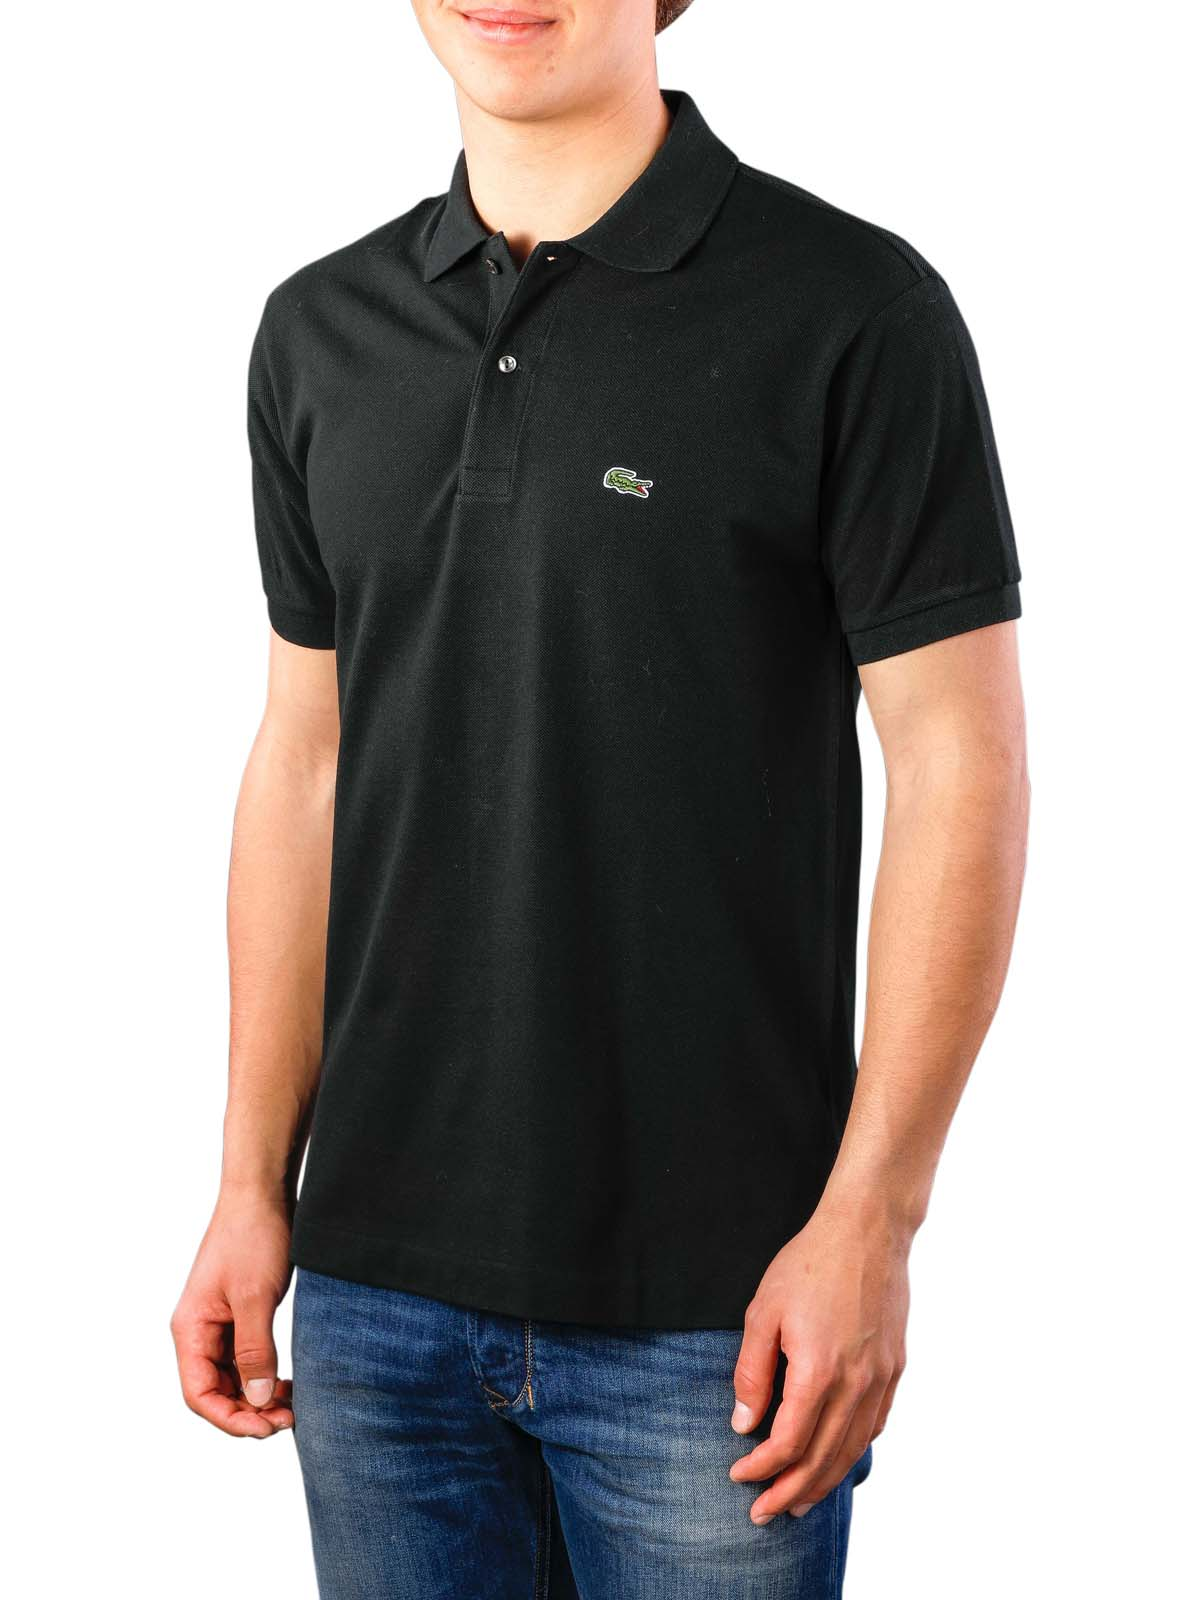 newest 1f91b a9126 Lacoste Polo Shirt Short Sleeves noir